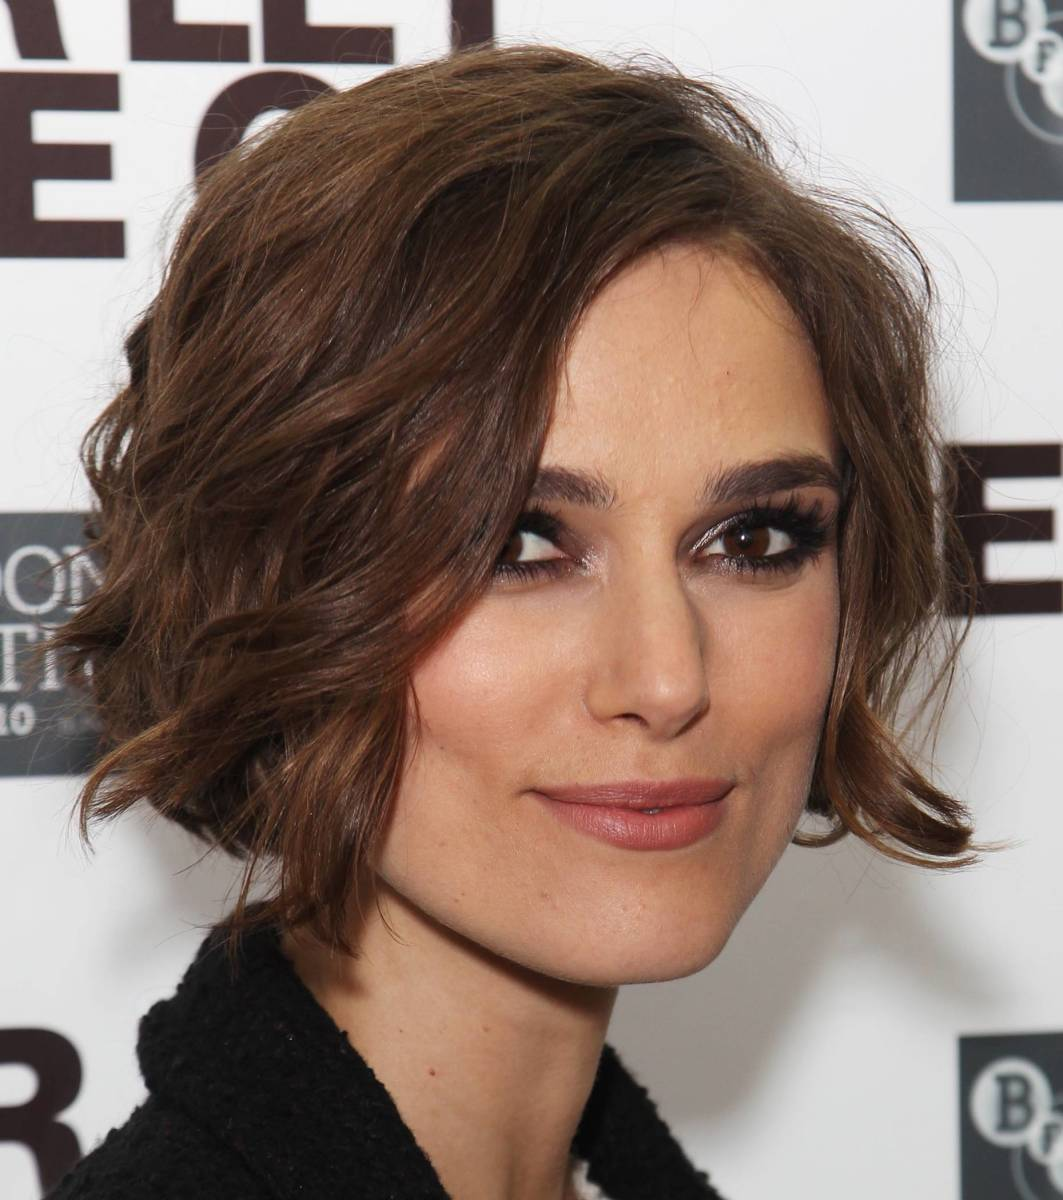 The cut appears to be at the jawline as stated not to do, however the soft curls in her hair balance it out making it a beautiful style for her face.